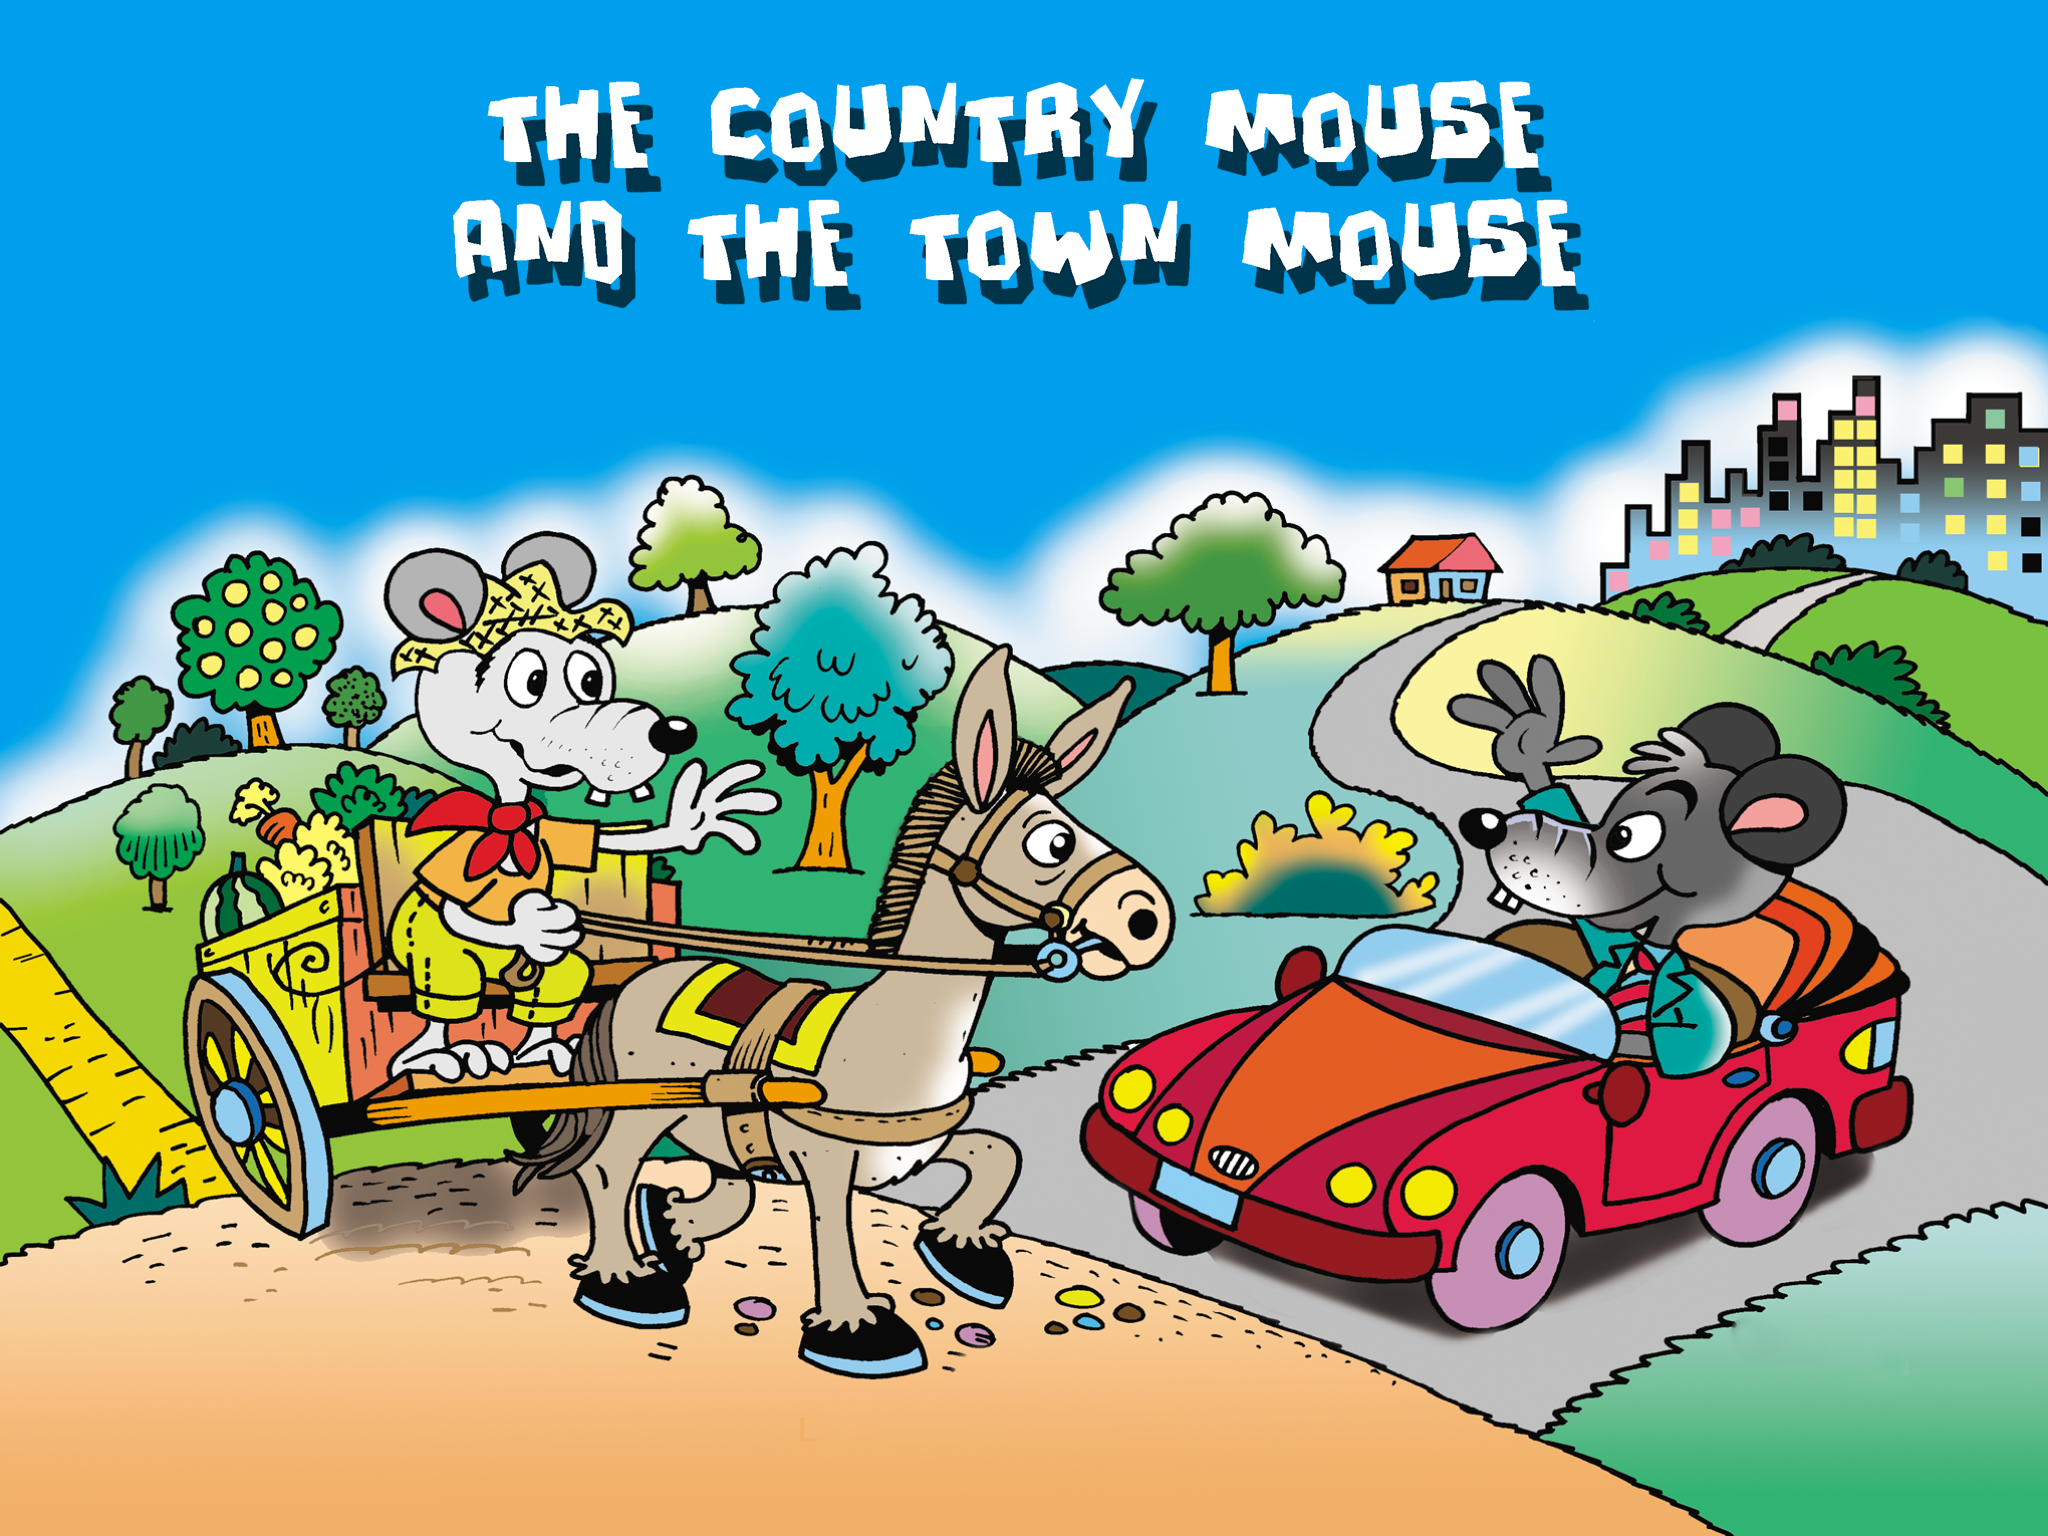 app-contry-mouse-14